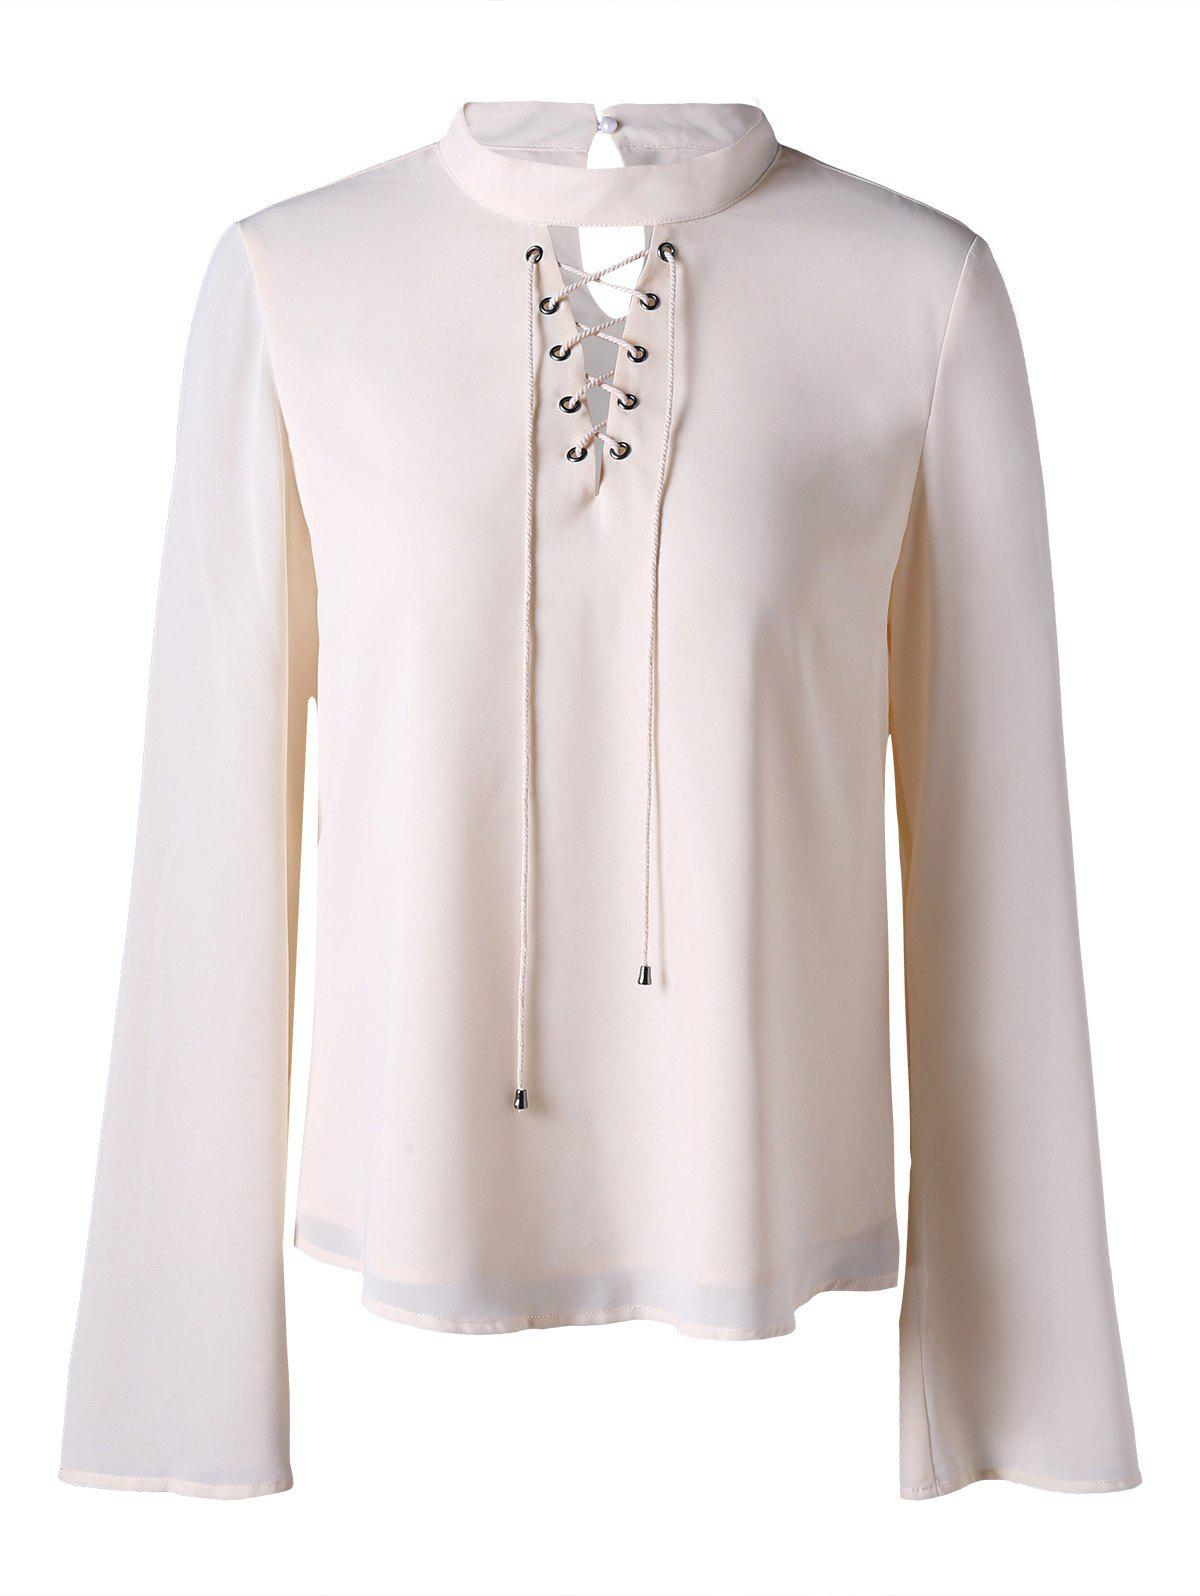 Mock Neck Lace Up Blouse - OFF WHITE M